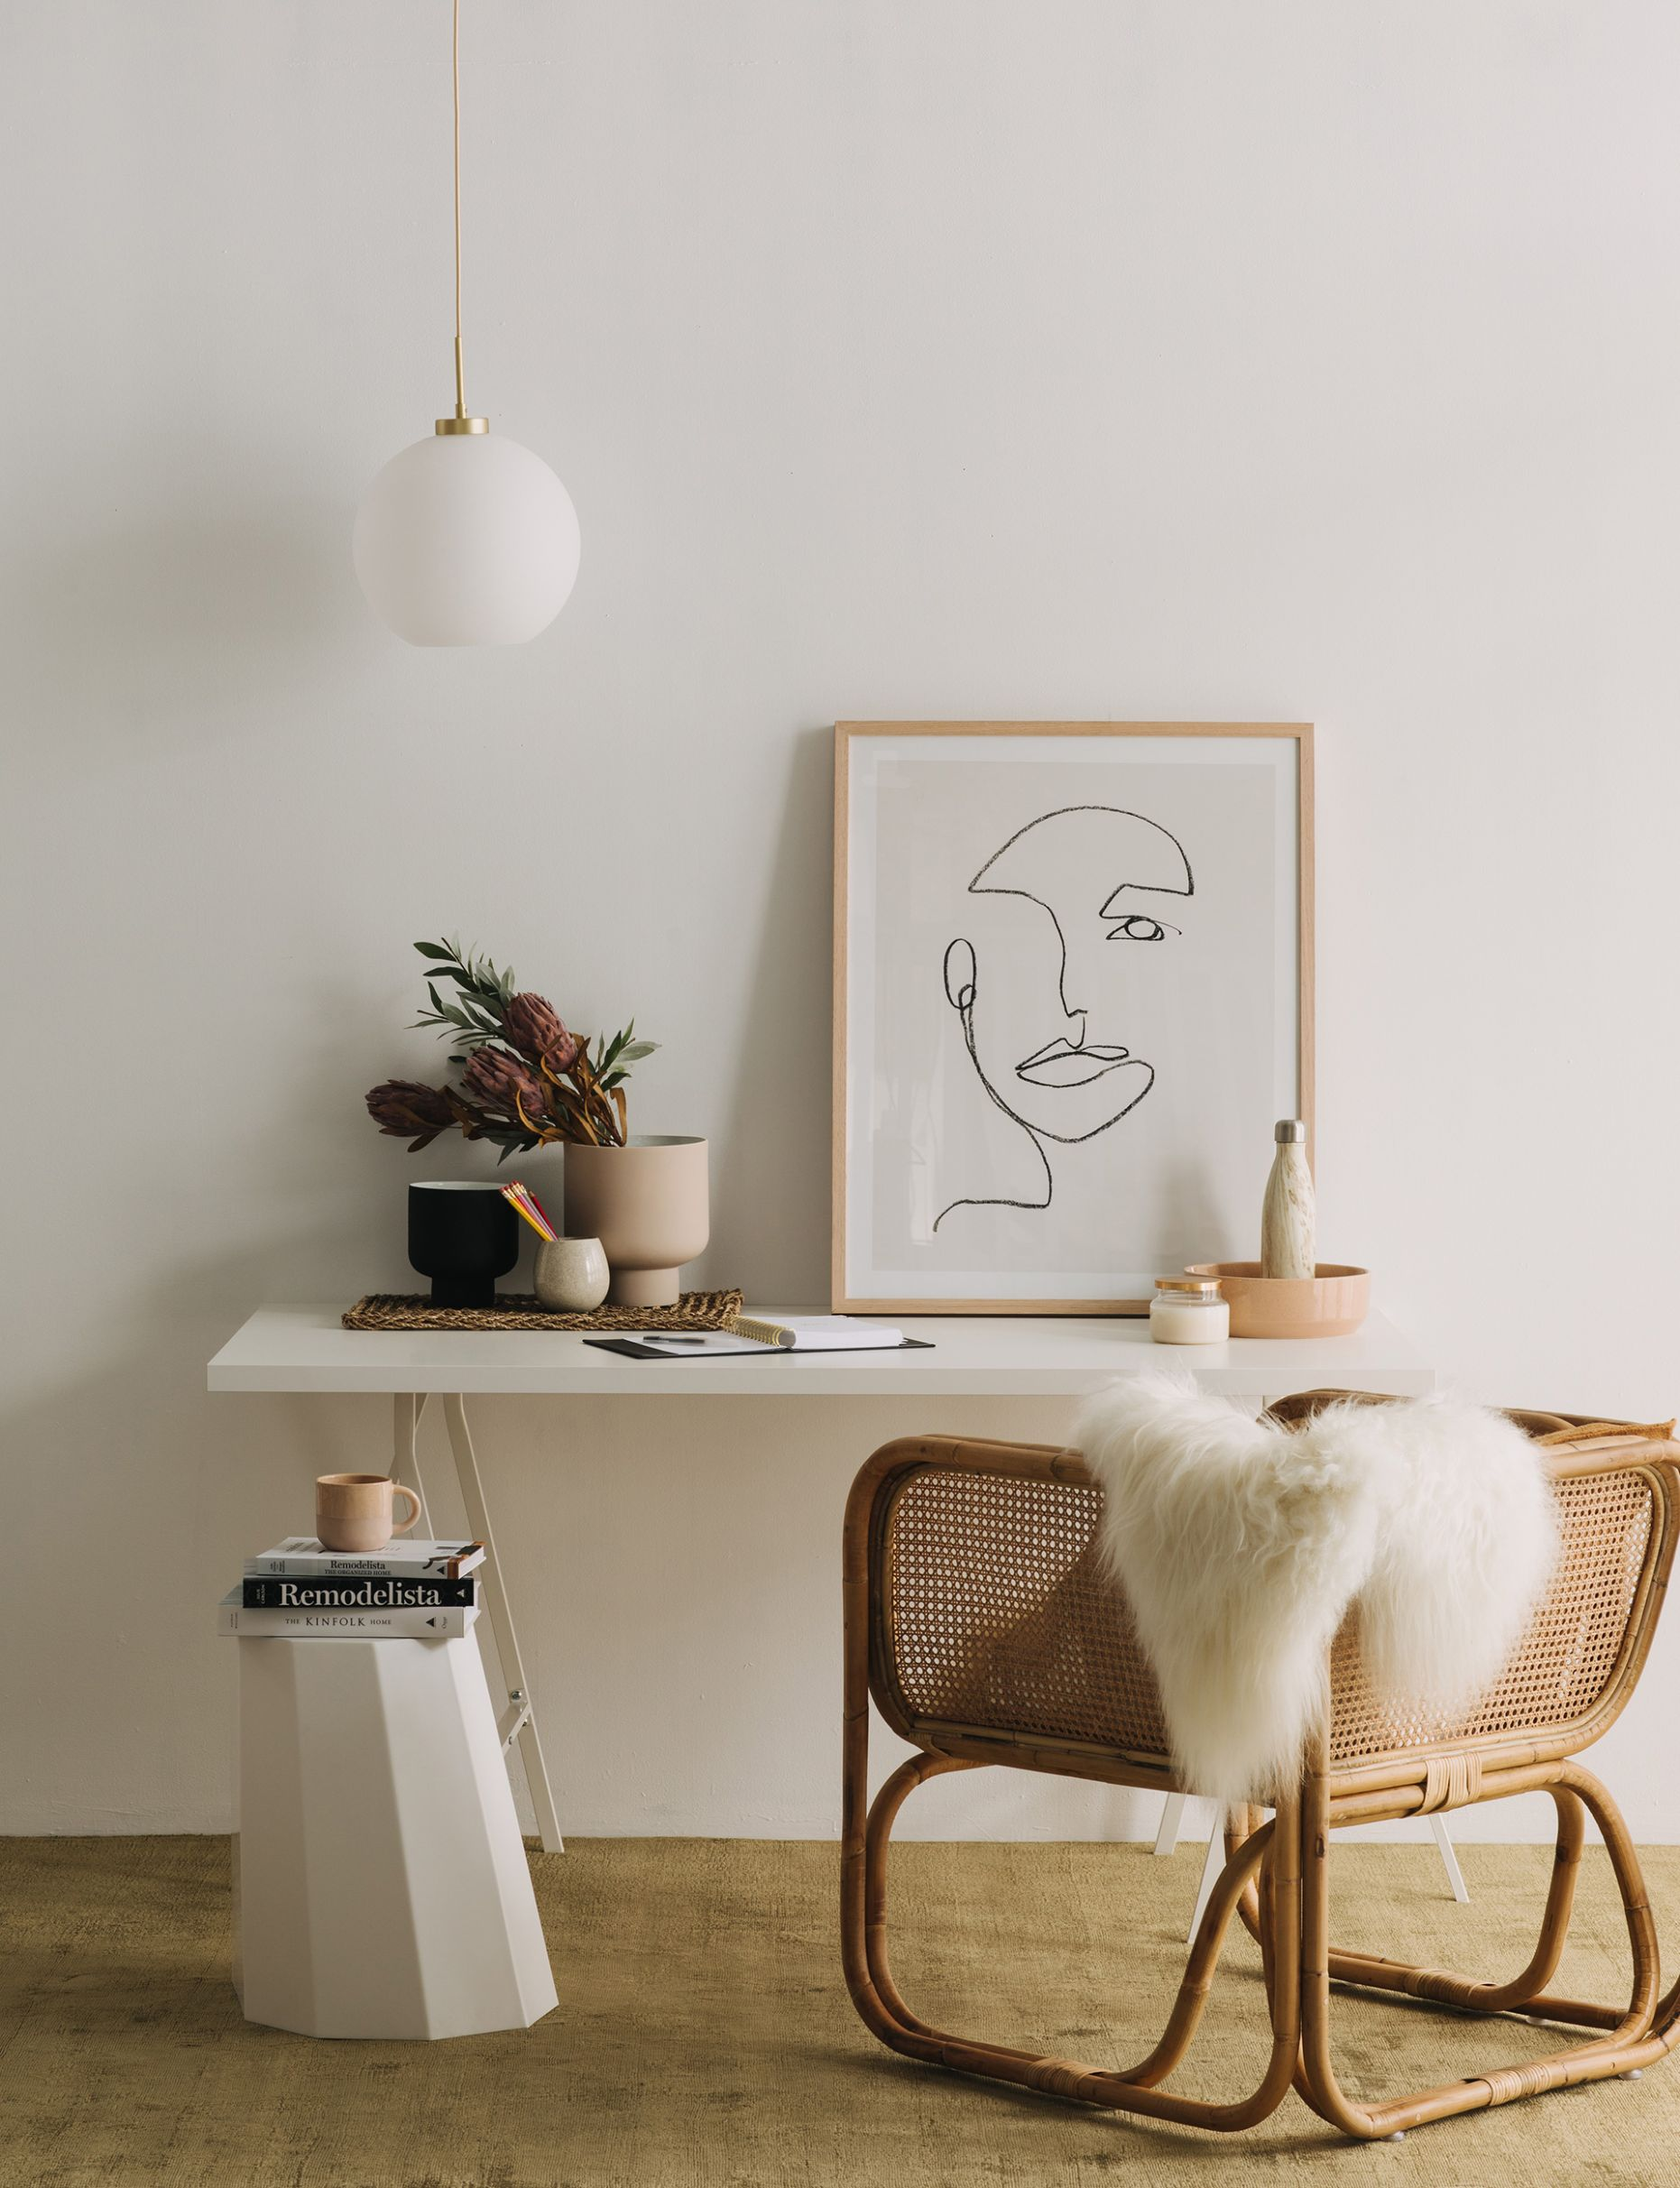 11 things every stylish home on Instagram has – and where to buy them - house inspiration instagram